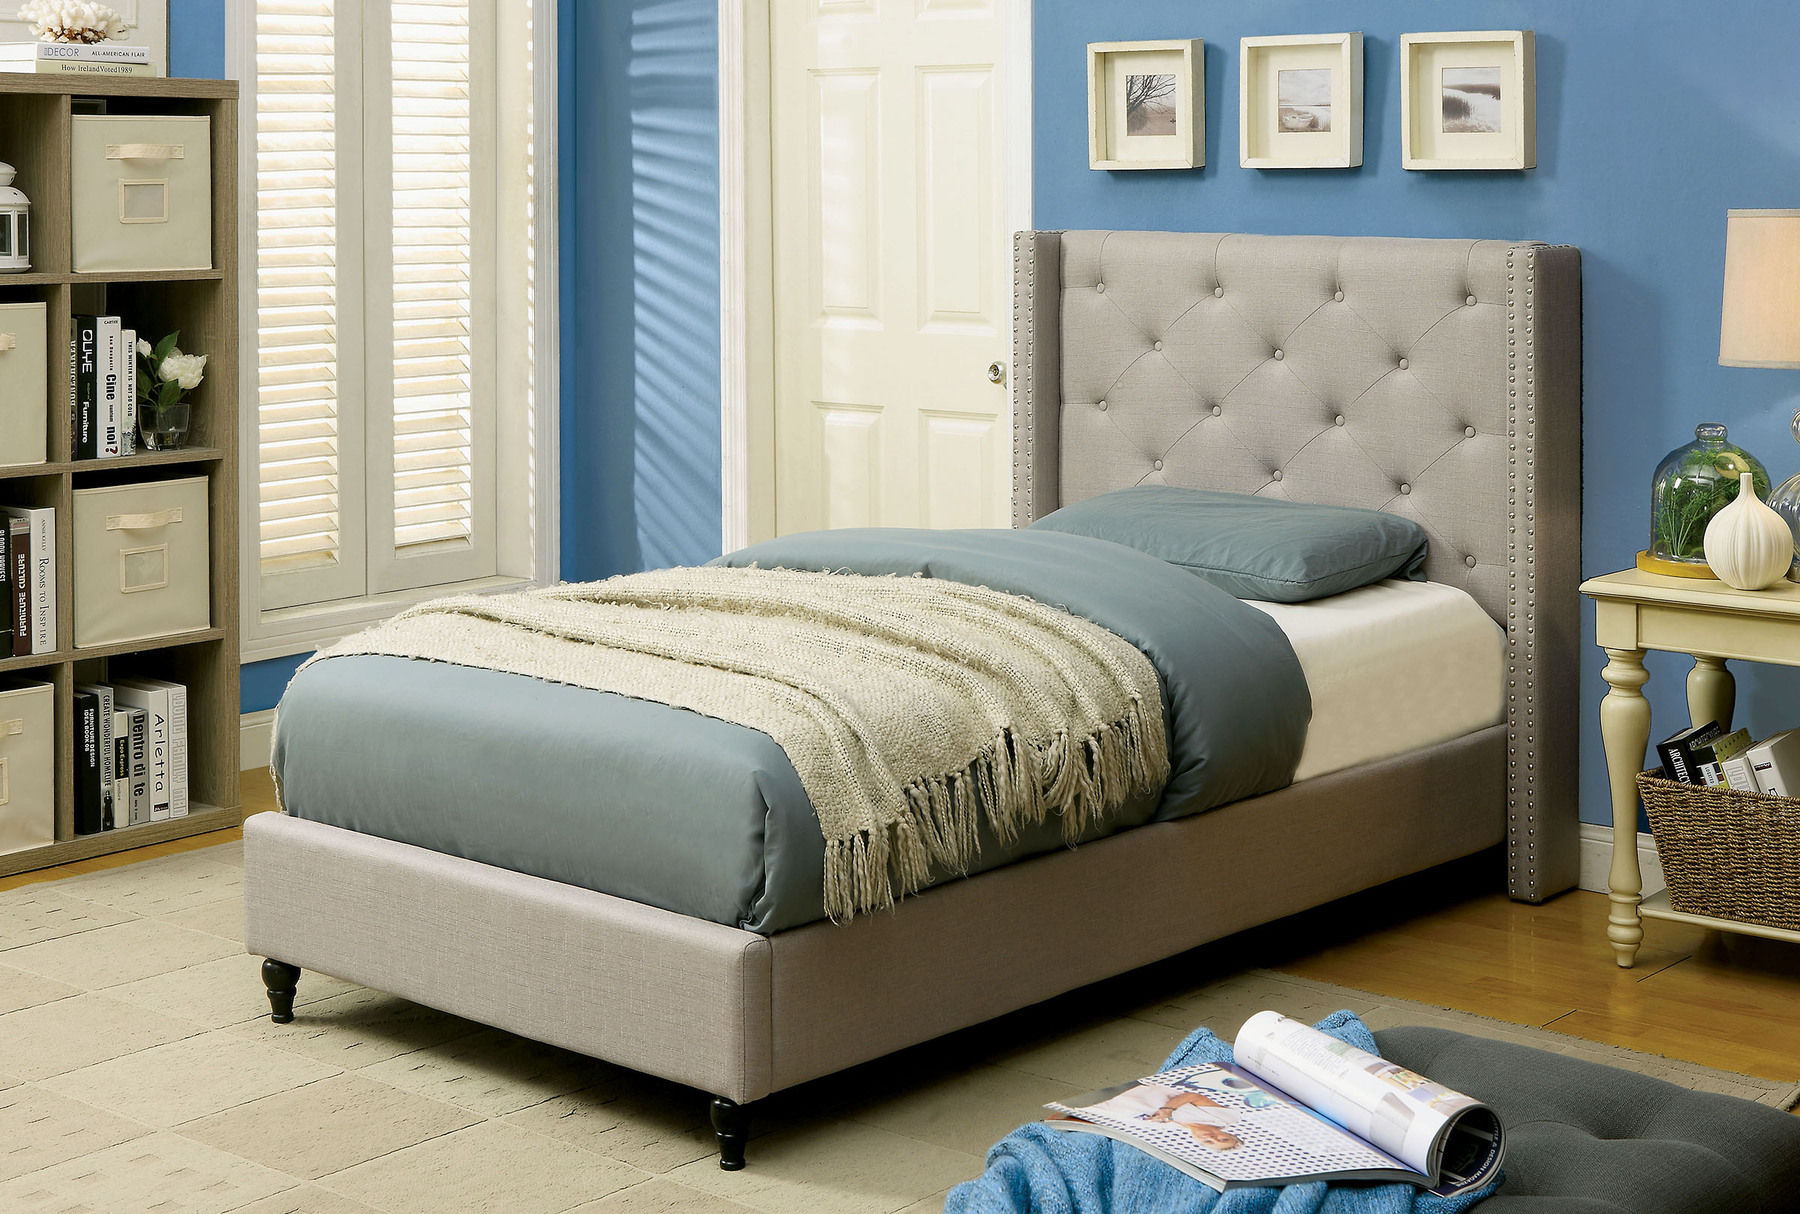 Annabelle Gray Twin Size Bed Cm7677gy Furniture Of America Twin Size Beds Comfyco Furniture